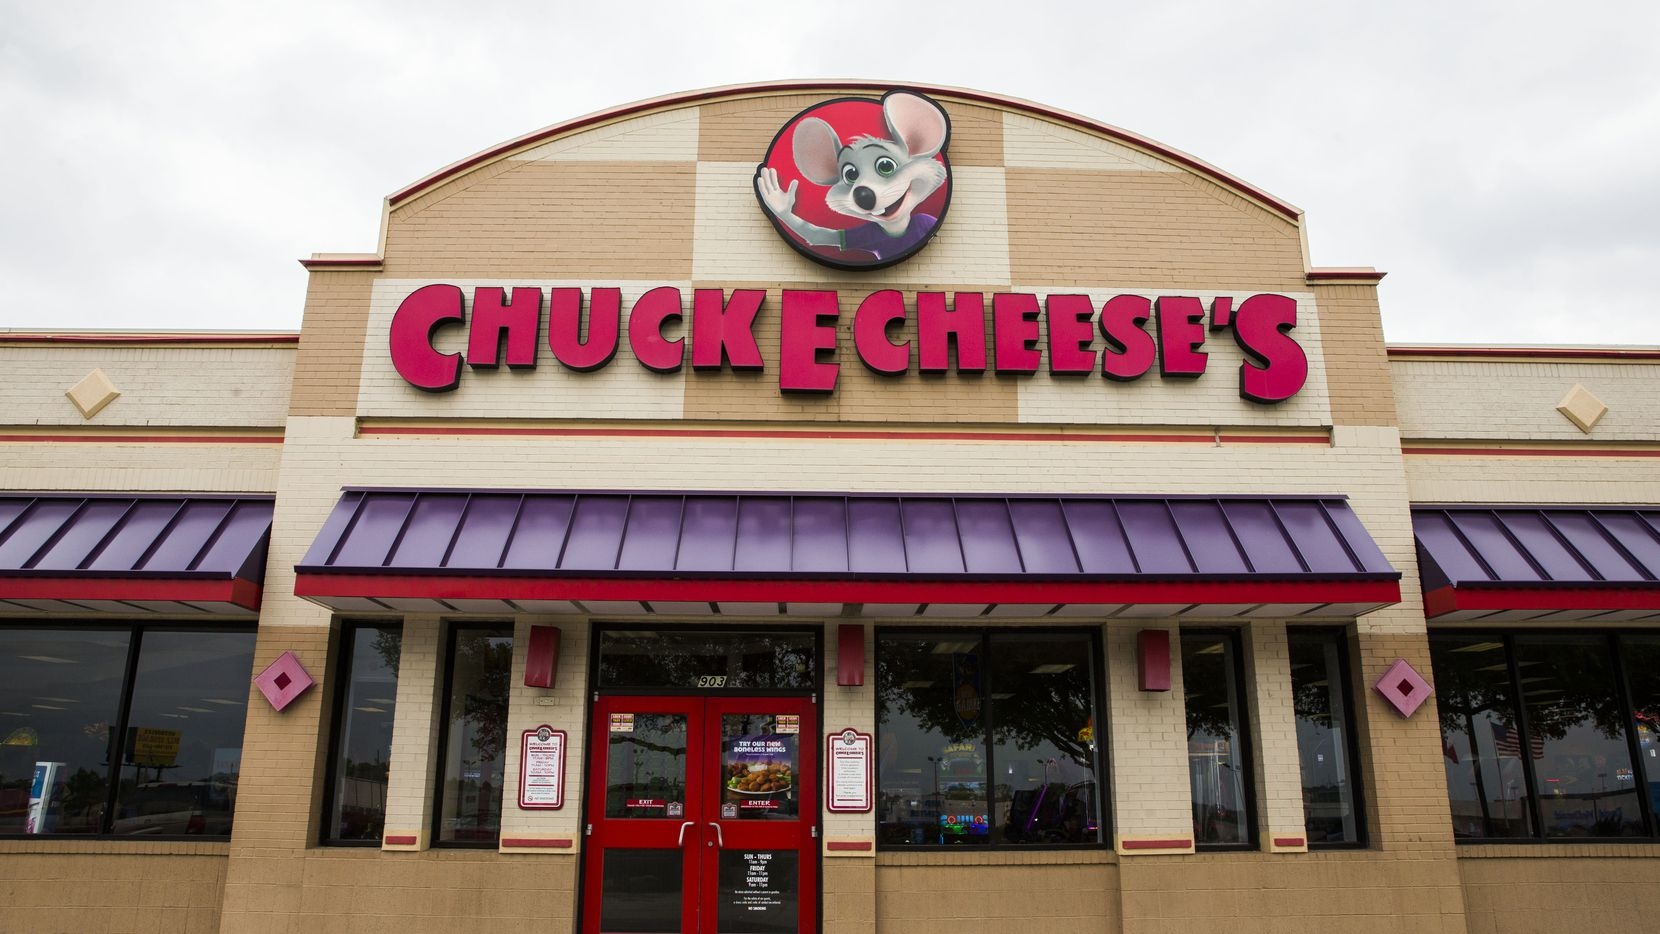 The exterior of Chuck E Cheese on Wednesday, April 8, 2015 in Irving, Texas.